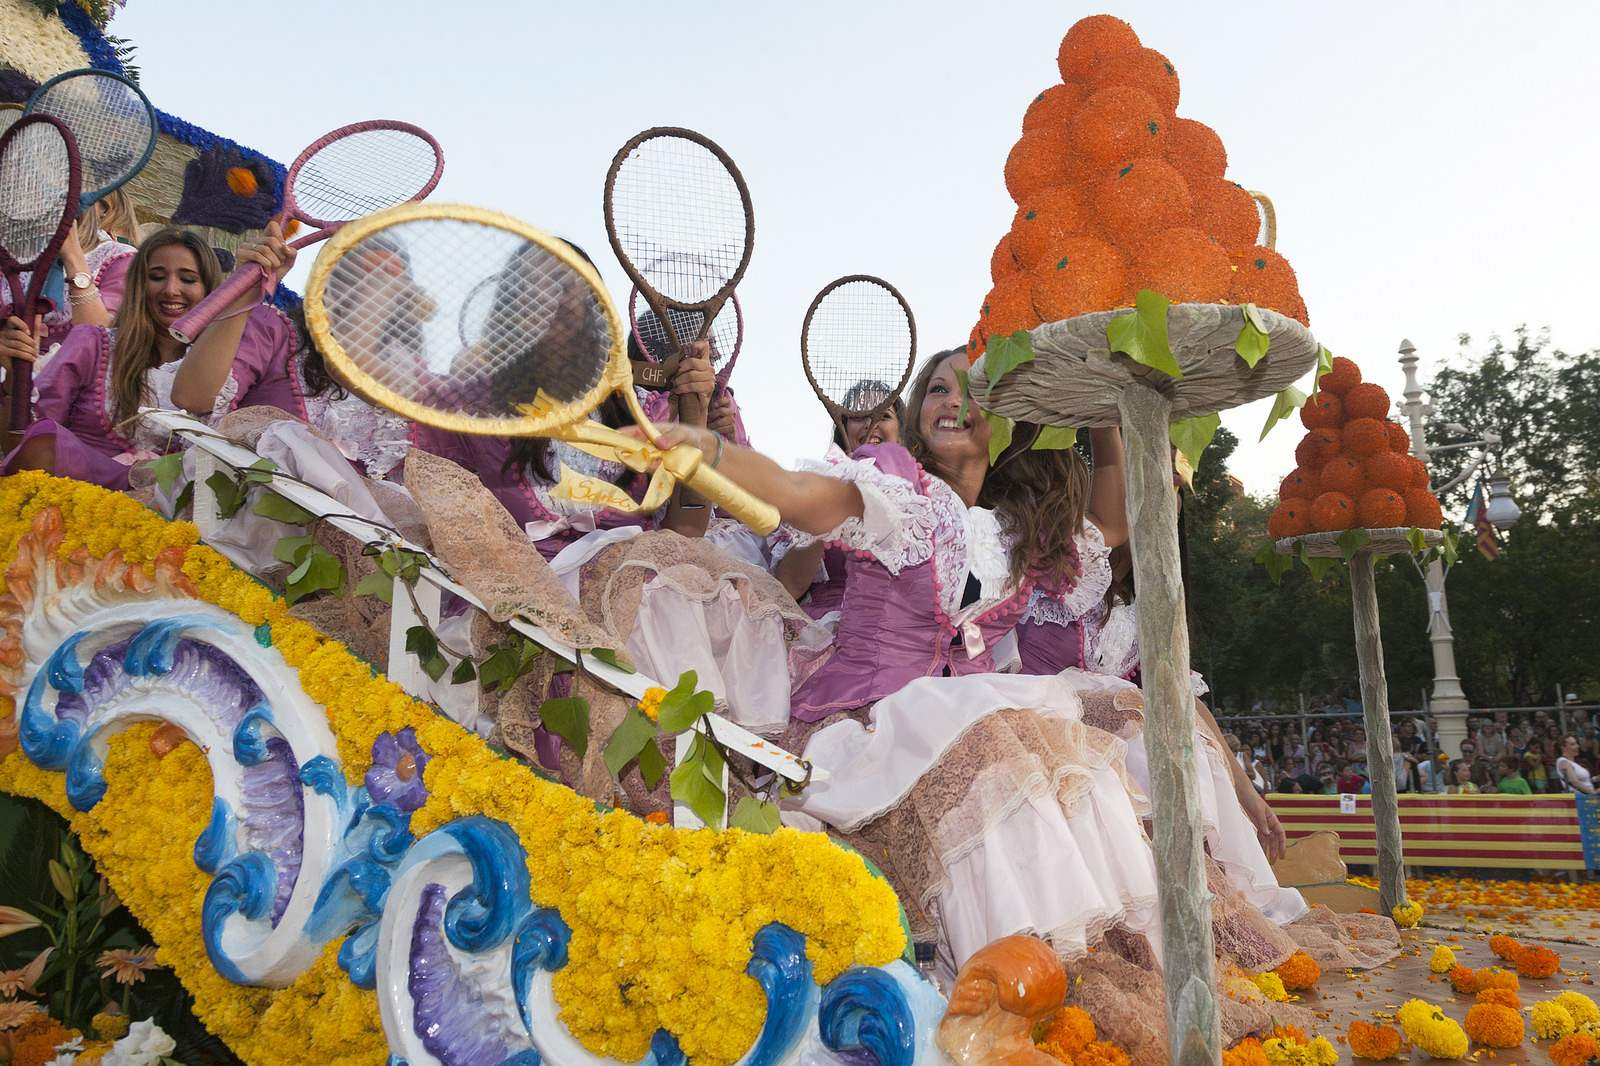 battle of flowers4 Battle of Flowers   Legendary Fiesta in Valencia